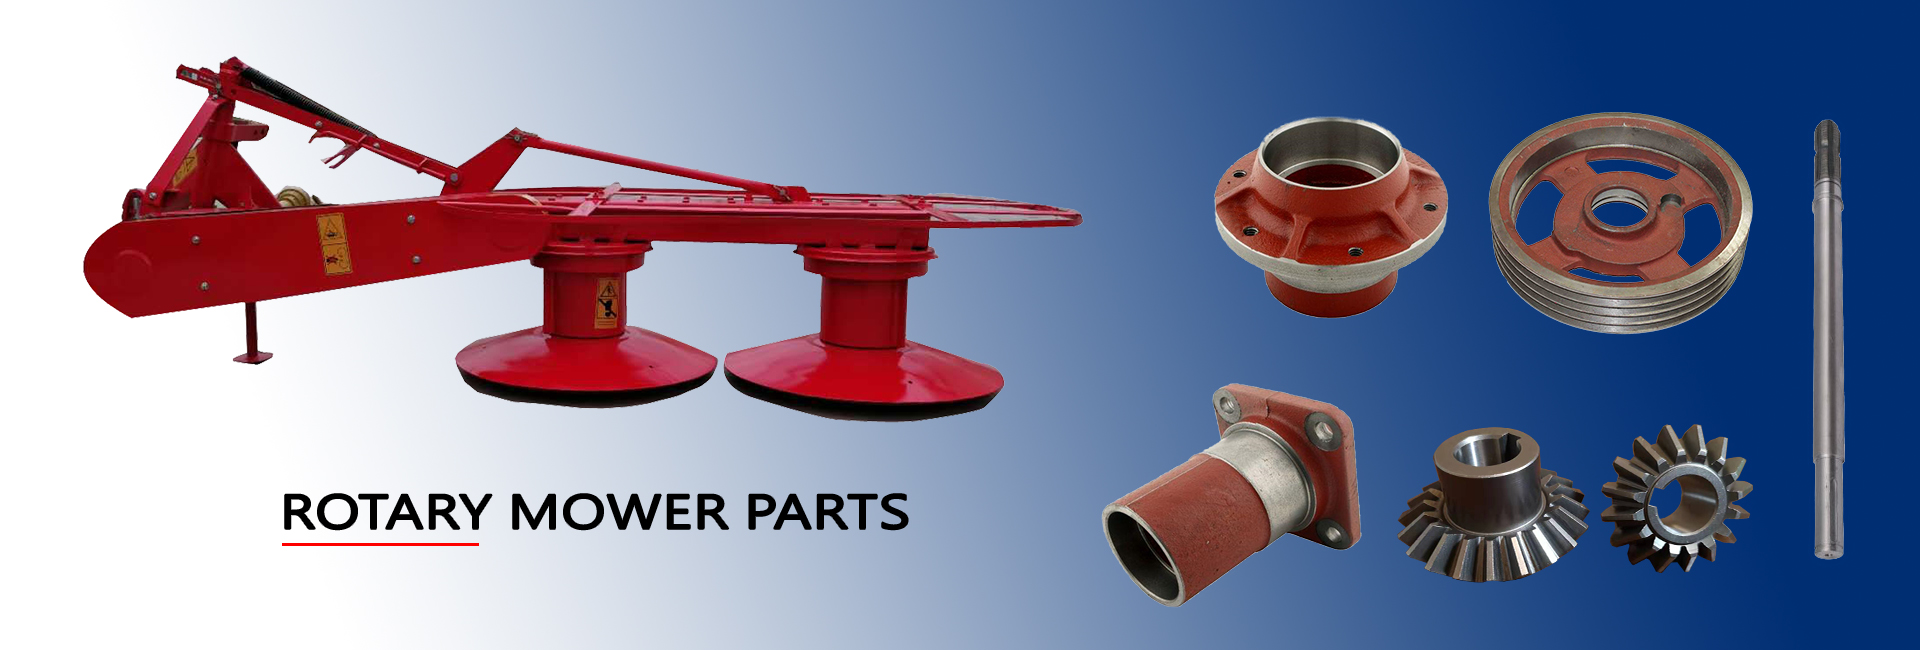 Rotary Mower Parts Z-069